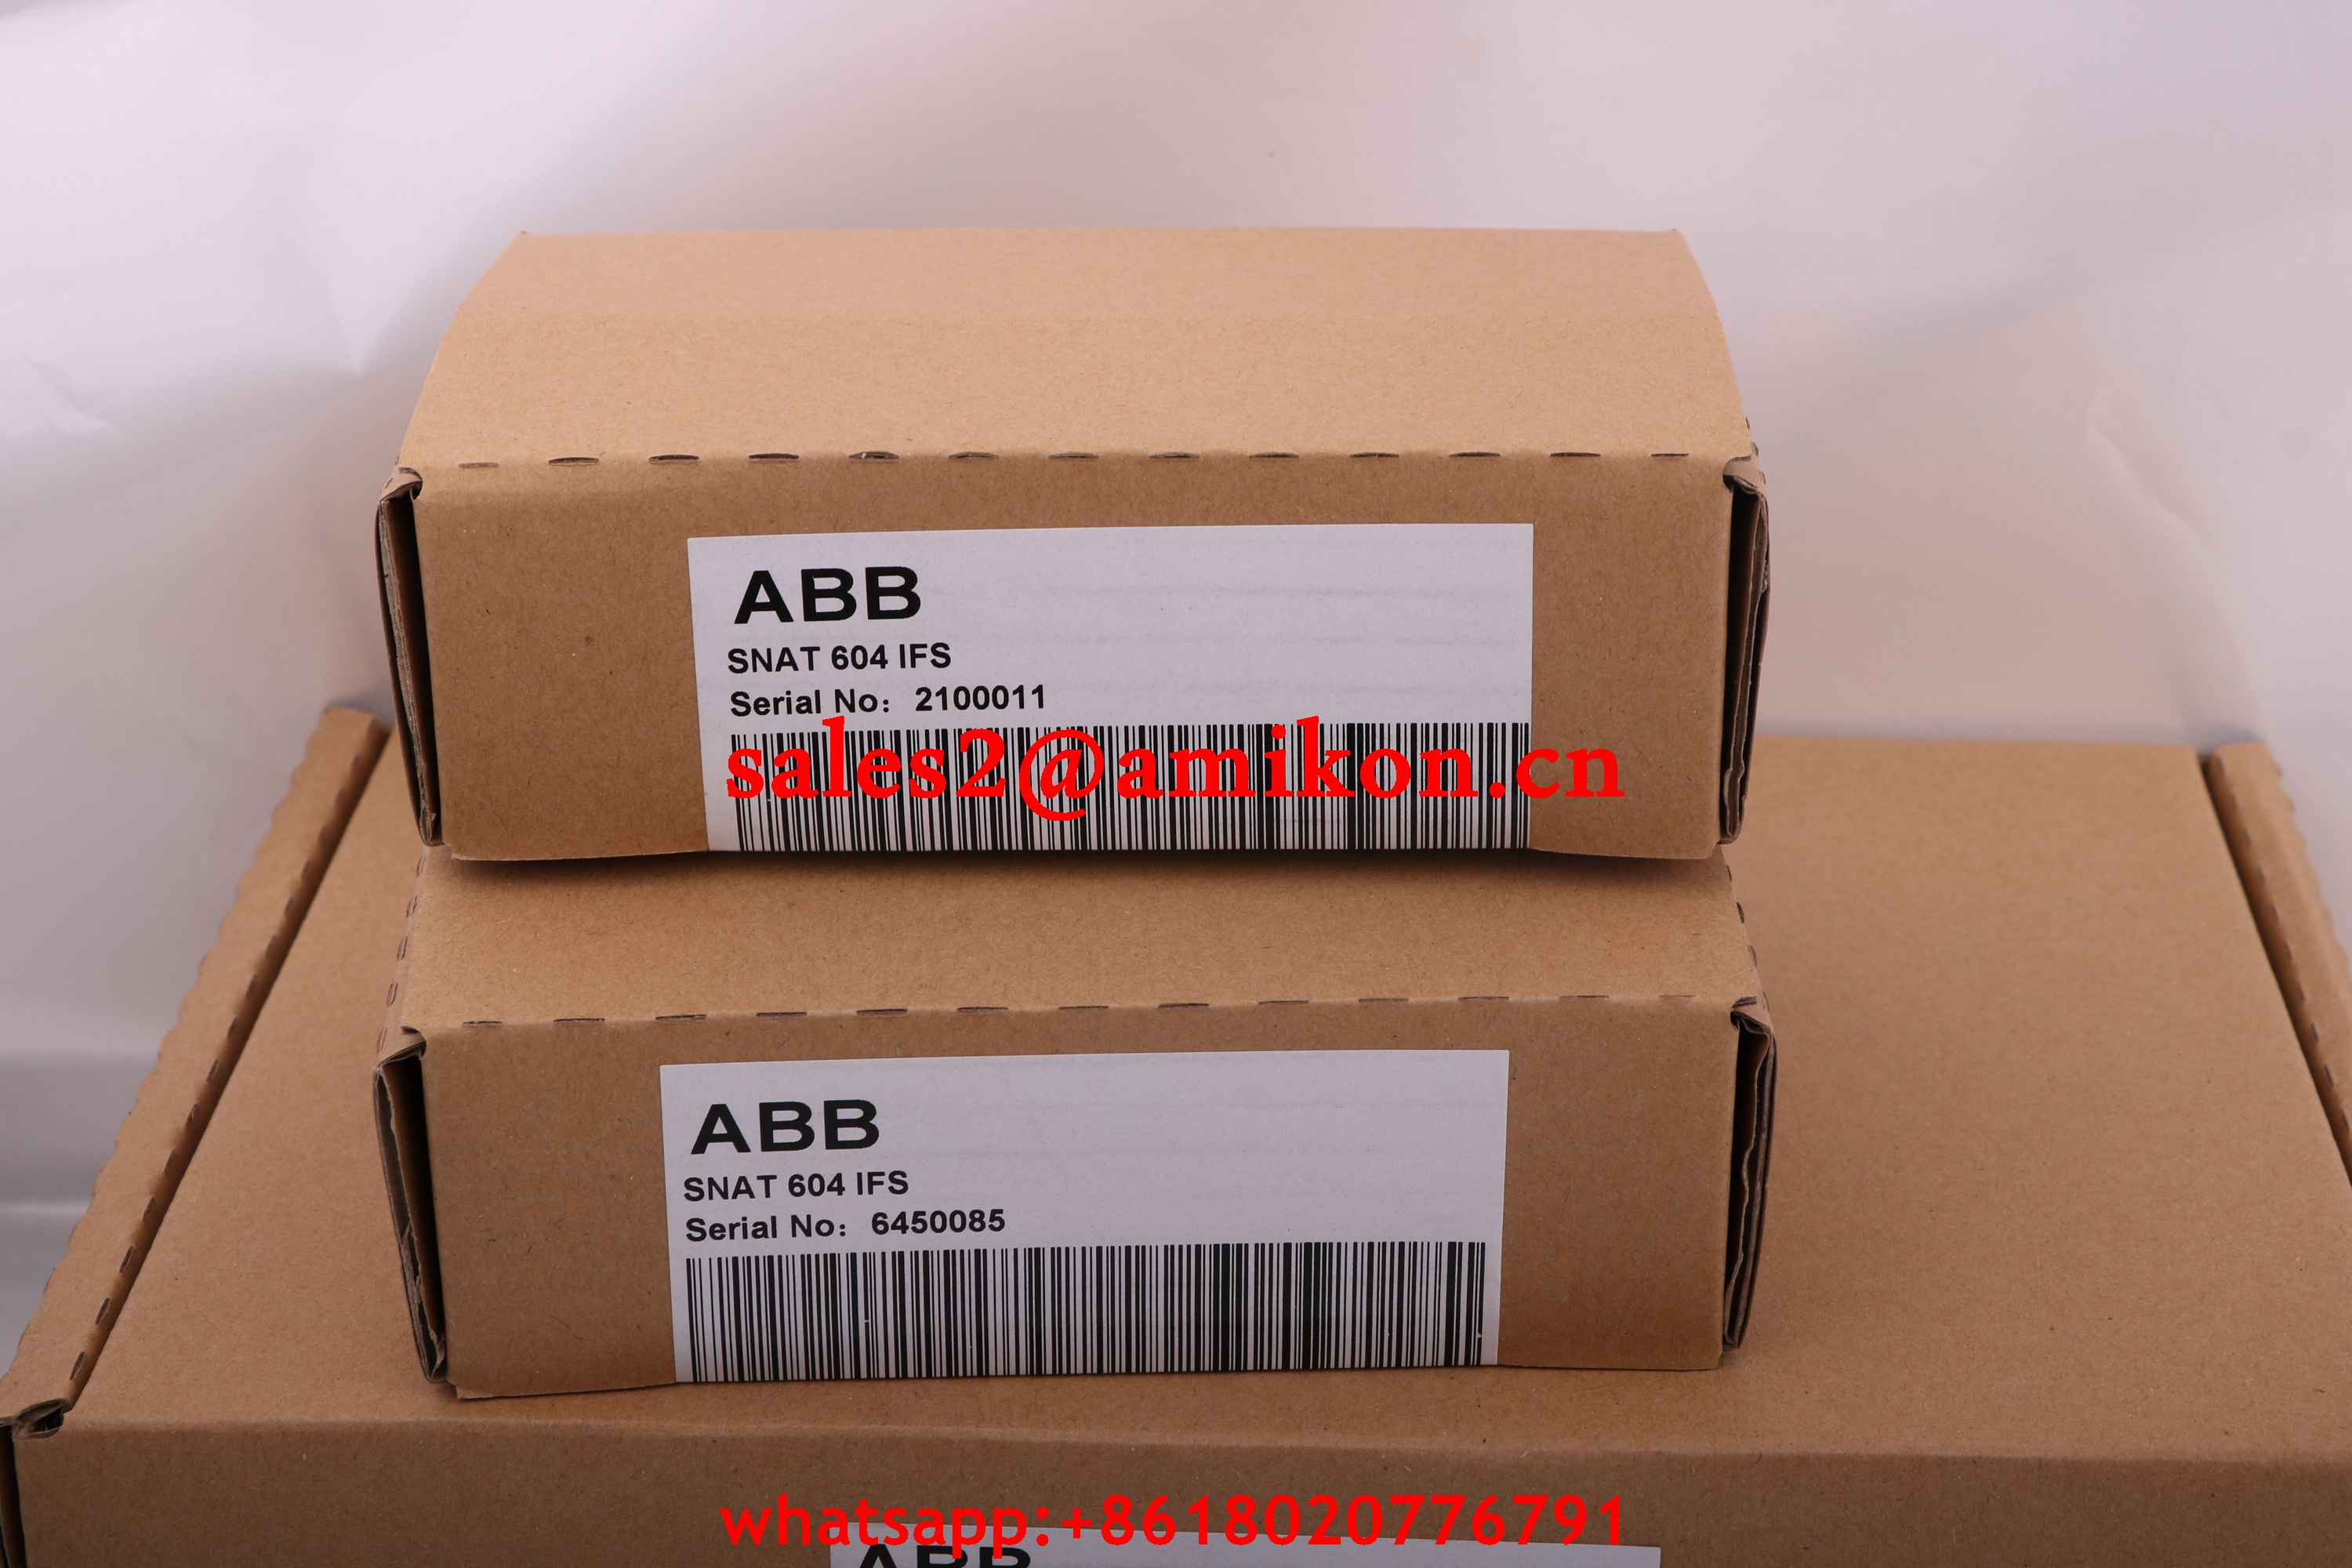 YB560103-BE DSQC 224 PC Board combi I/O ABB | Robot spare parts | PLC DCS Parts T/T 100% New In stock